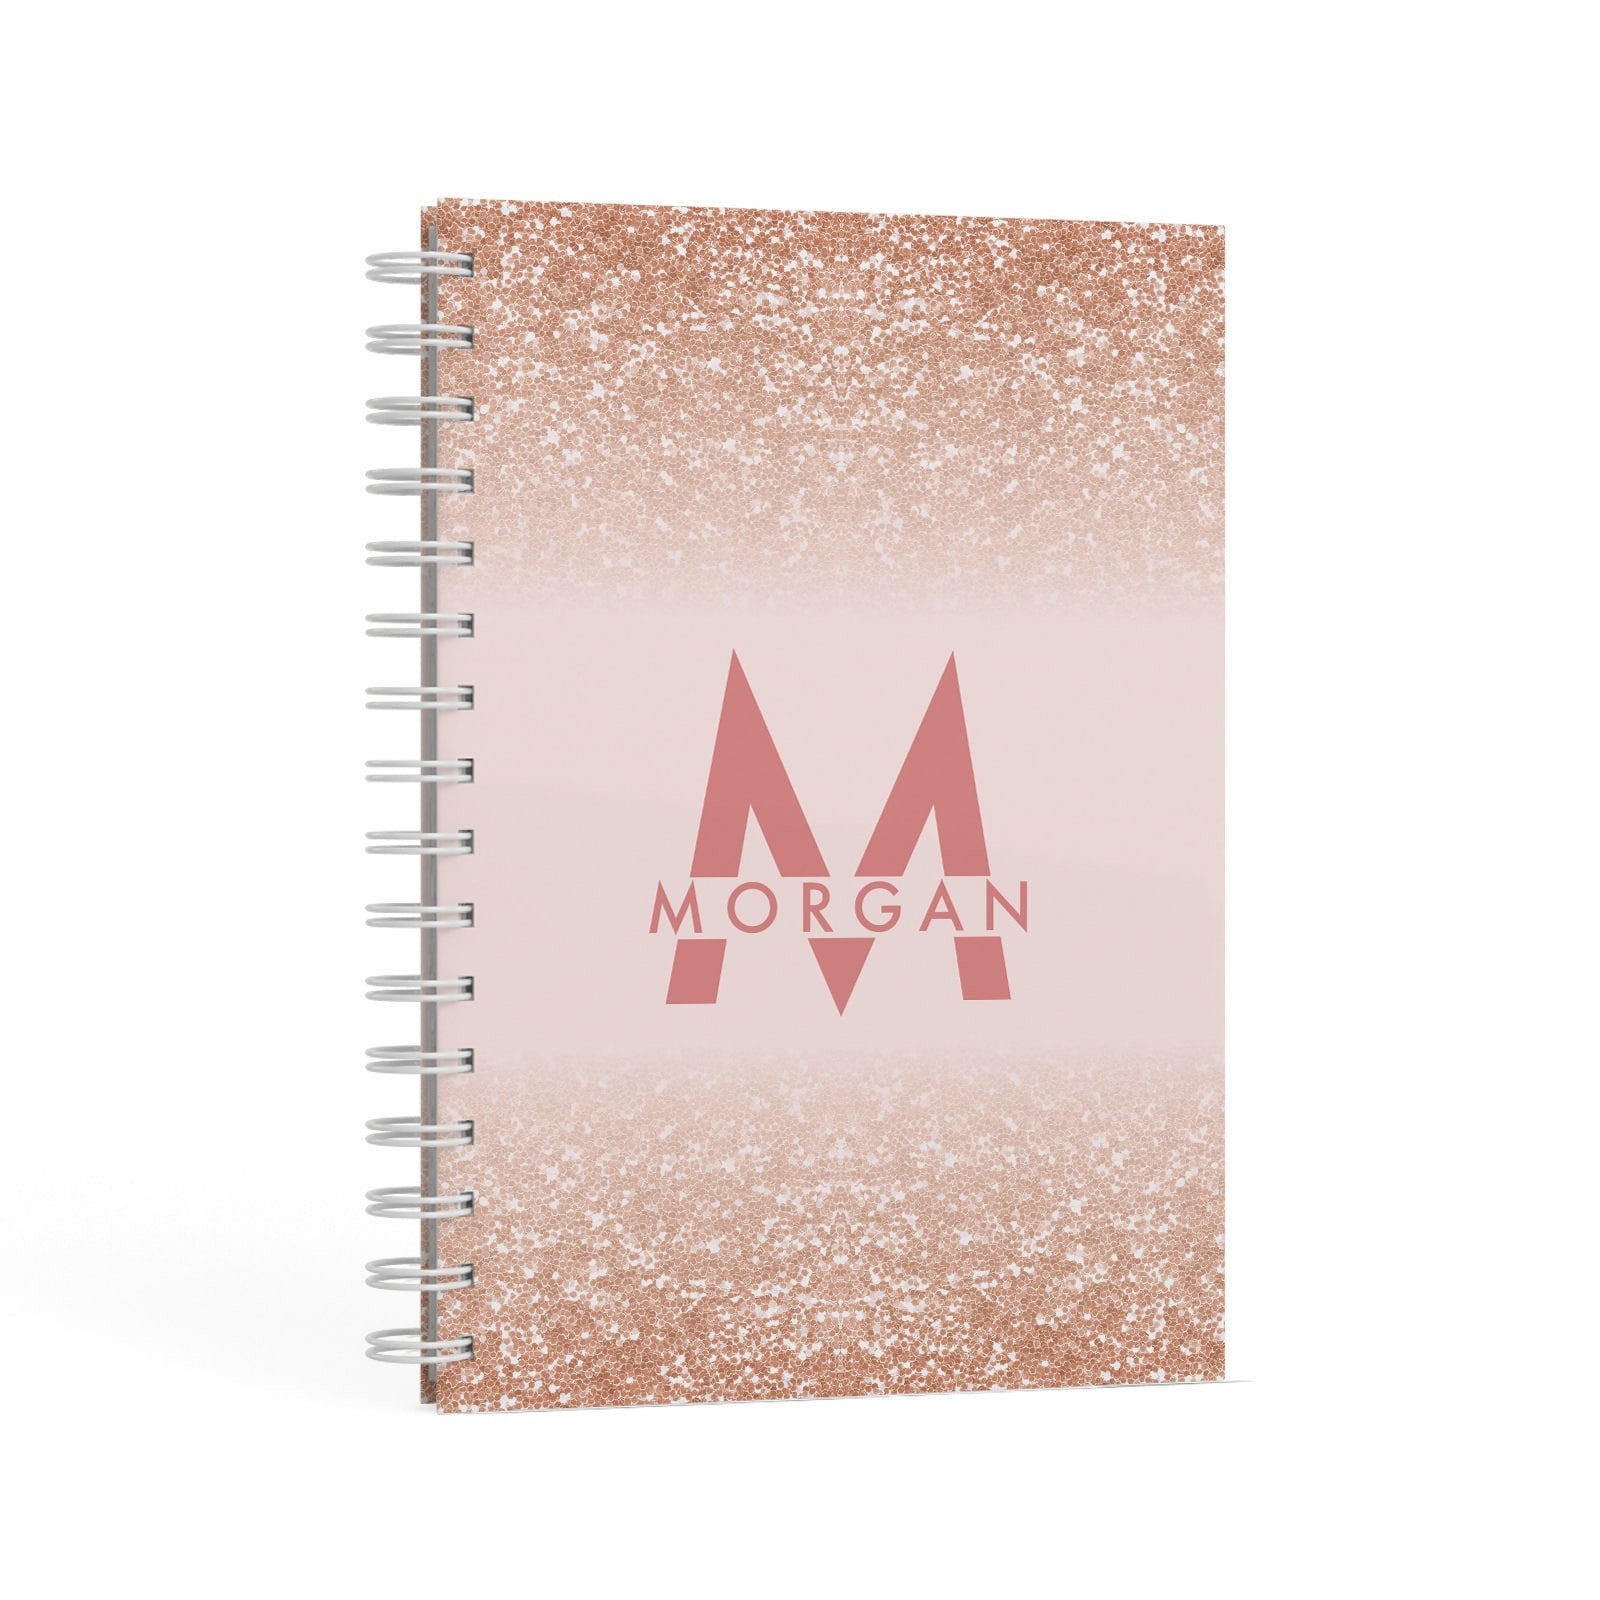 Personalised Printed Glitter Name Initials A5 Hardcover Notebook Second Side View